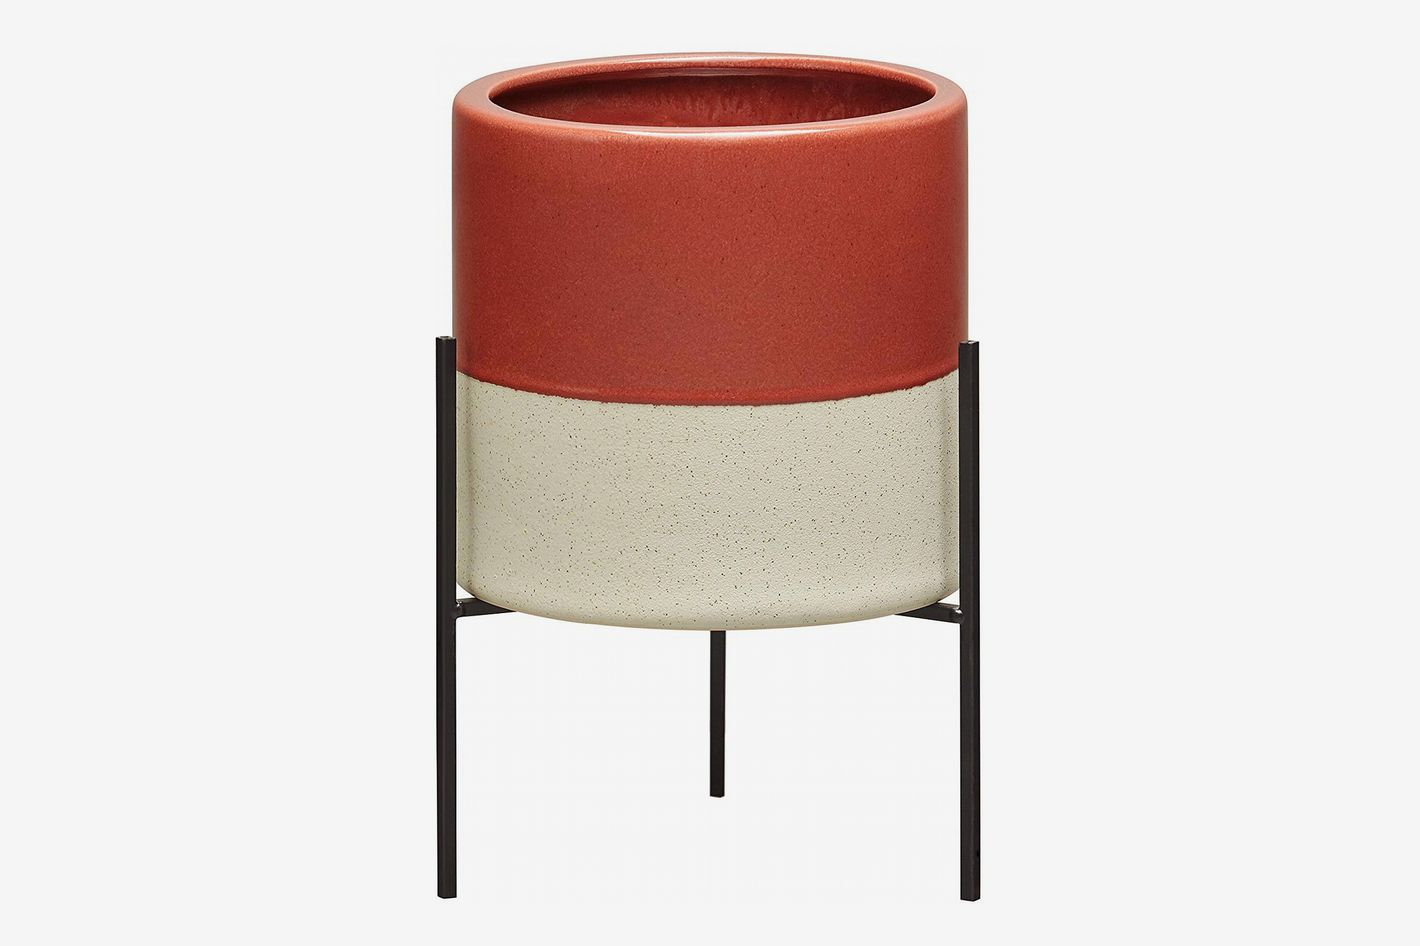 Rivet Mid-Century Ceramic Planter with Iron Stand